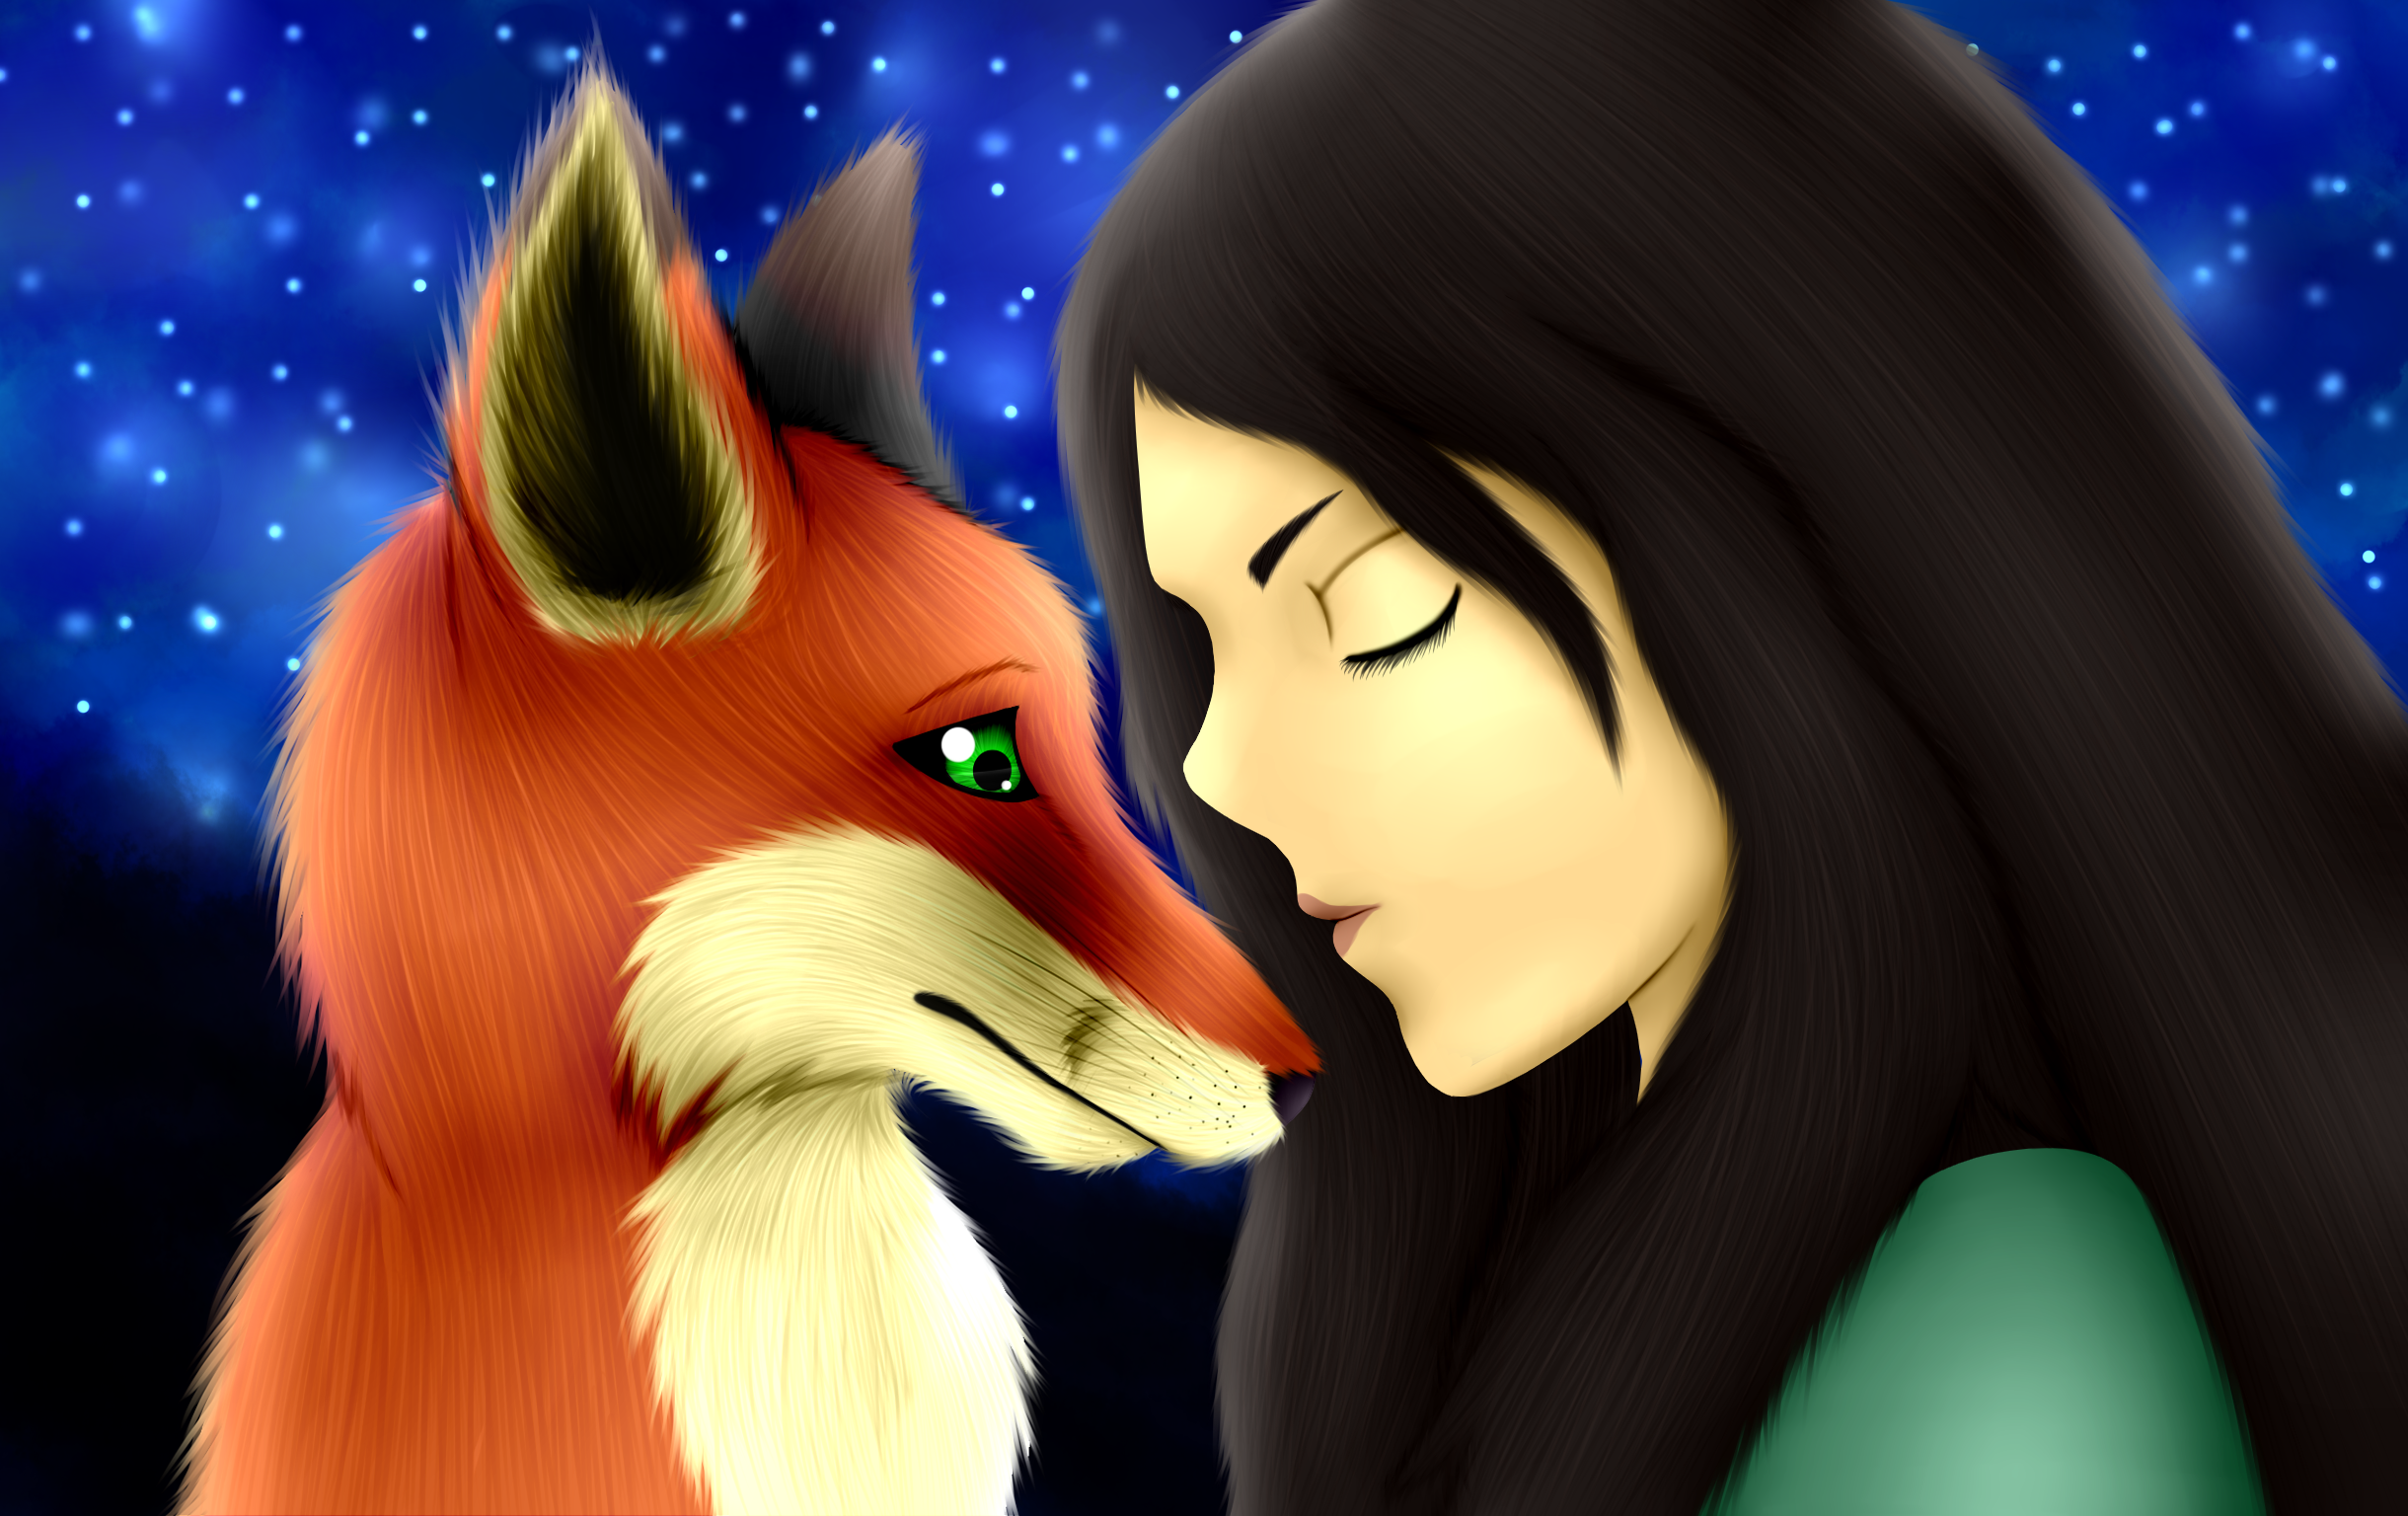 Fox and girl by torikaze